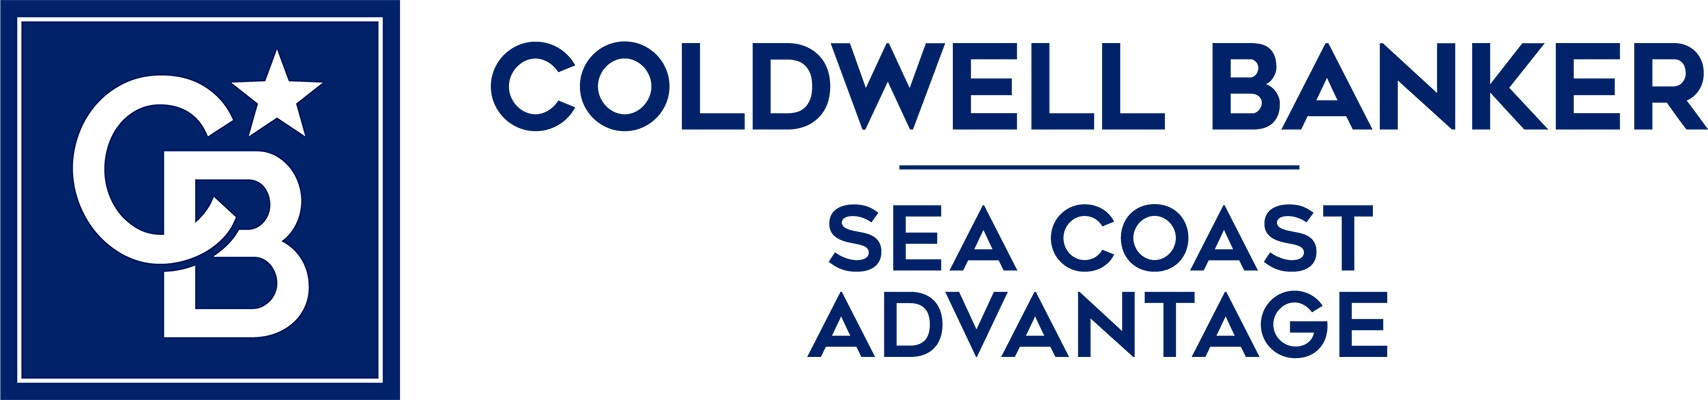 Lisa Cooper - Coldwell Banker Sea Coast Advantage Realty Logo